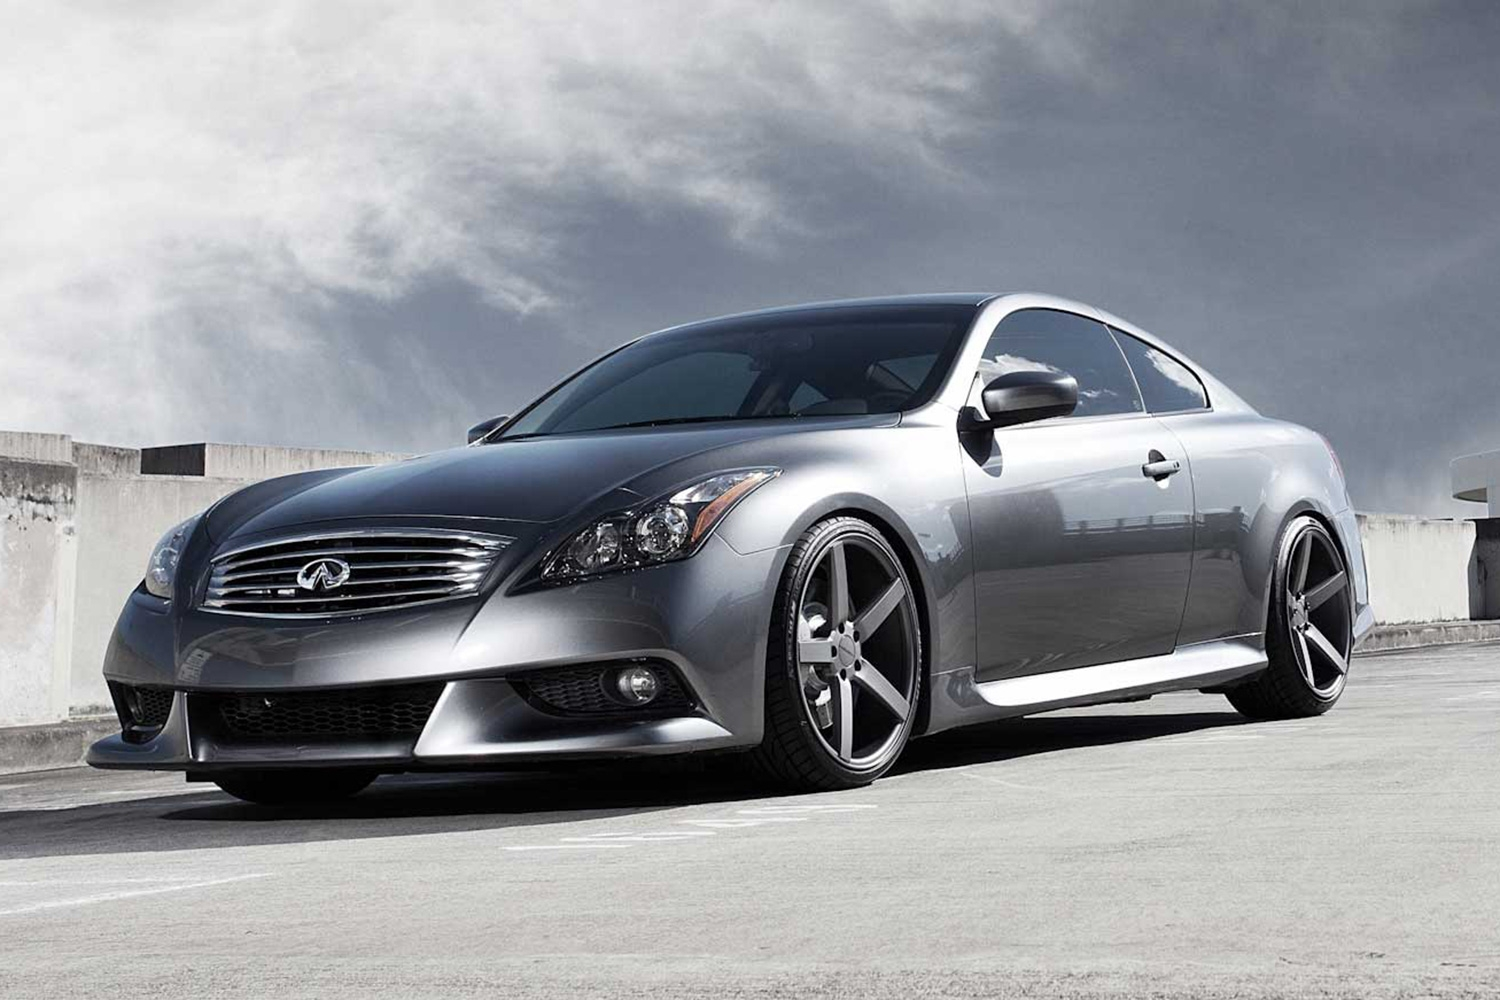 infiniti for hp ipl com the forcegt wheel builds twin turbo build sale horsepower infinity rear fp